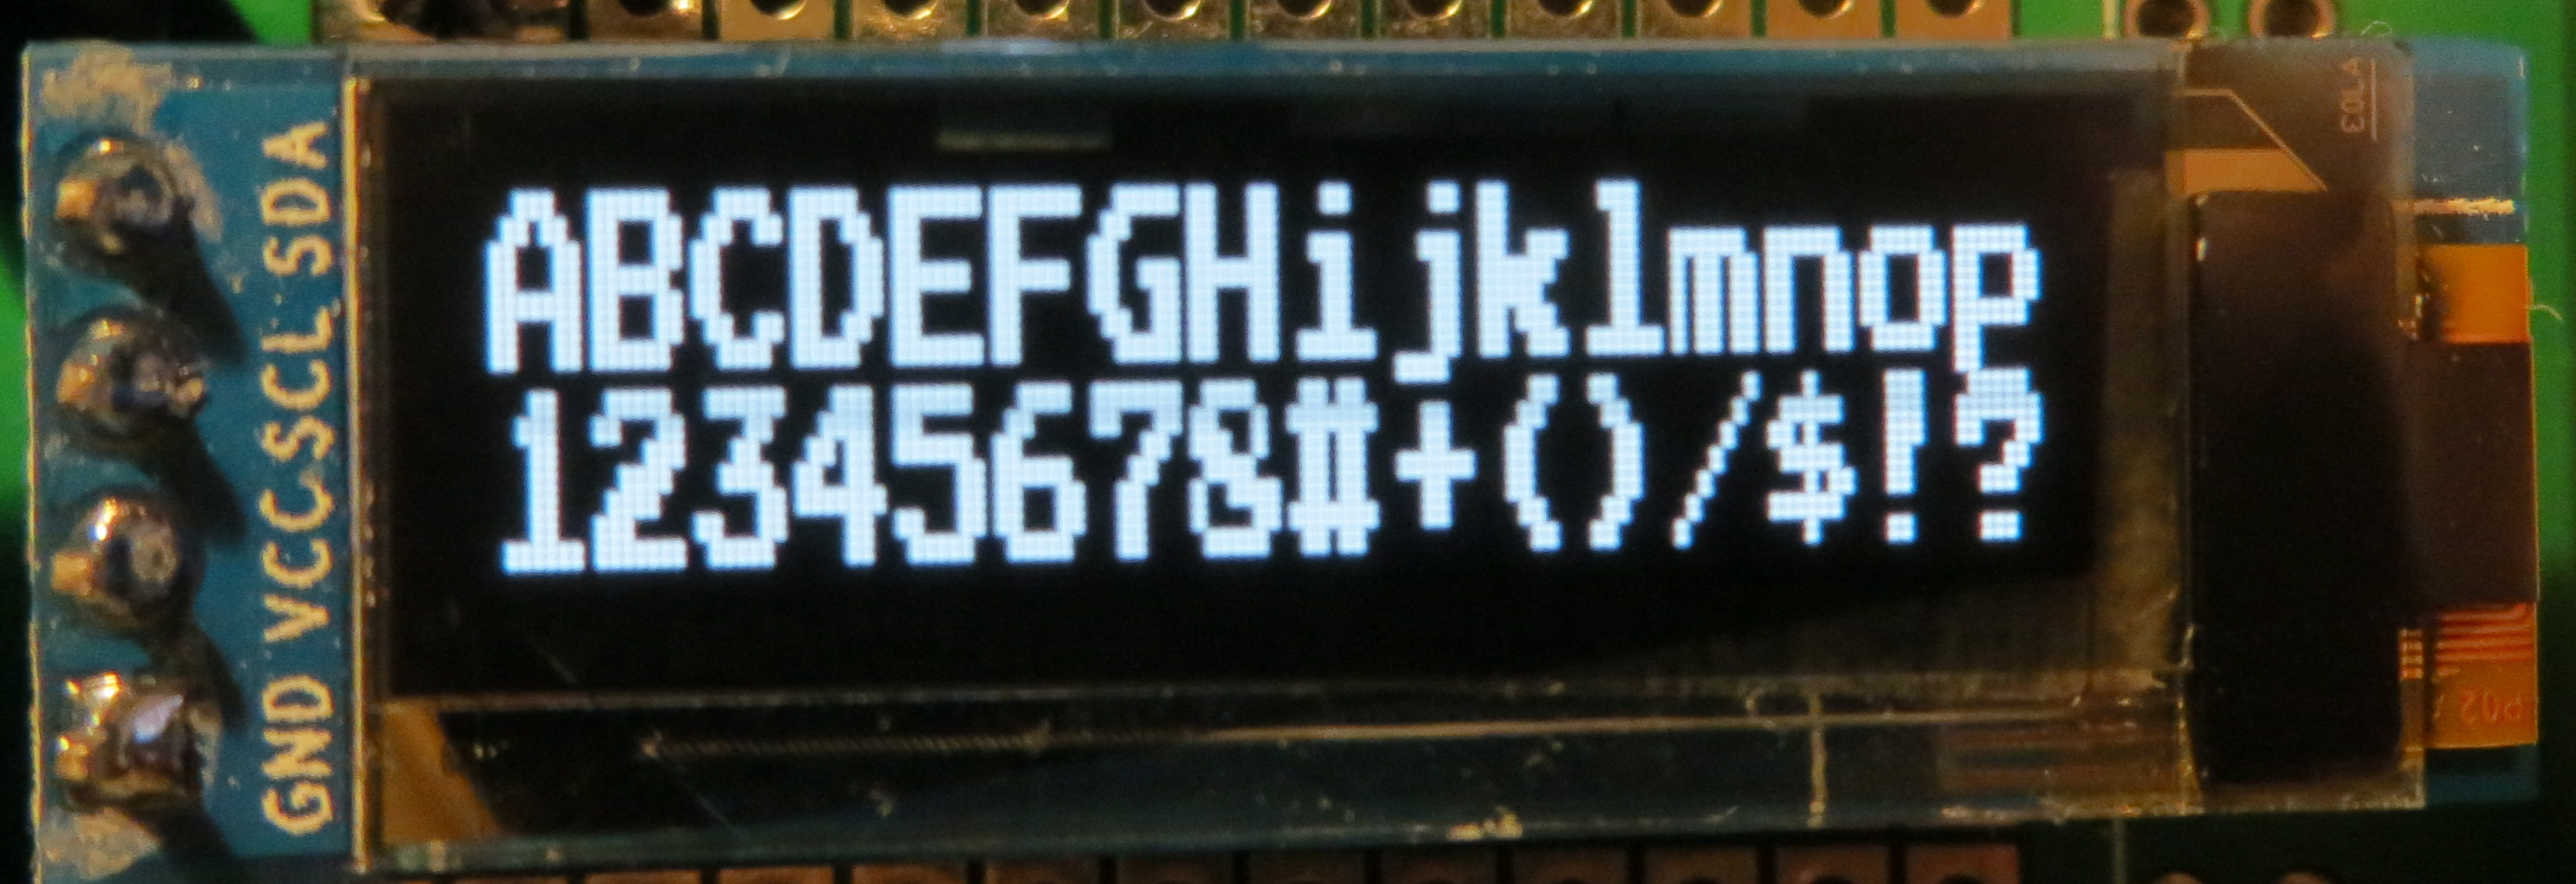 Developers - Use 128x32 pixel OLED like 16x2 LCD -